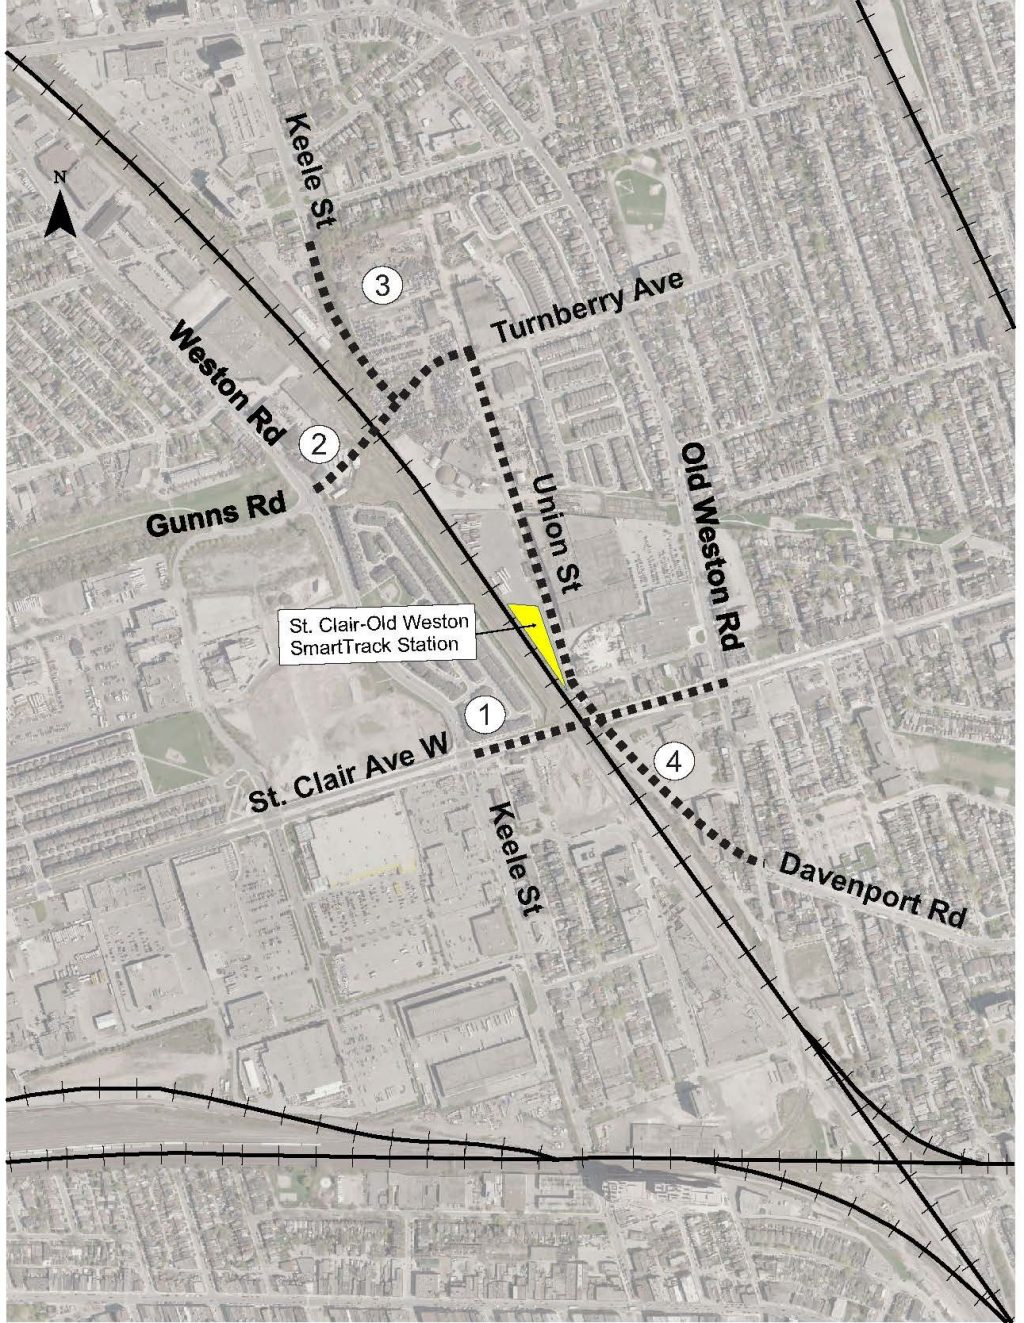 Map of recommended improvements, showing widening of St. Clair, Gunns Road Extension, Keele Street Extension, Extensin of Davenport to Union Street.